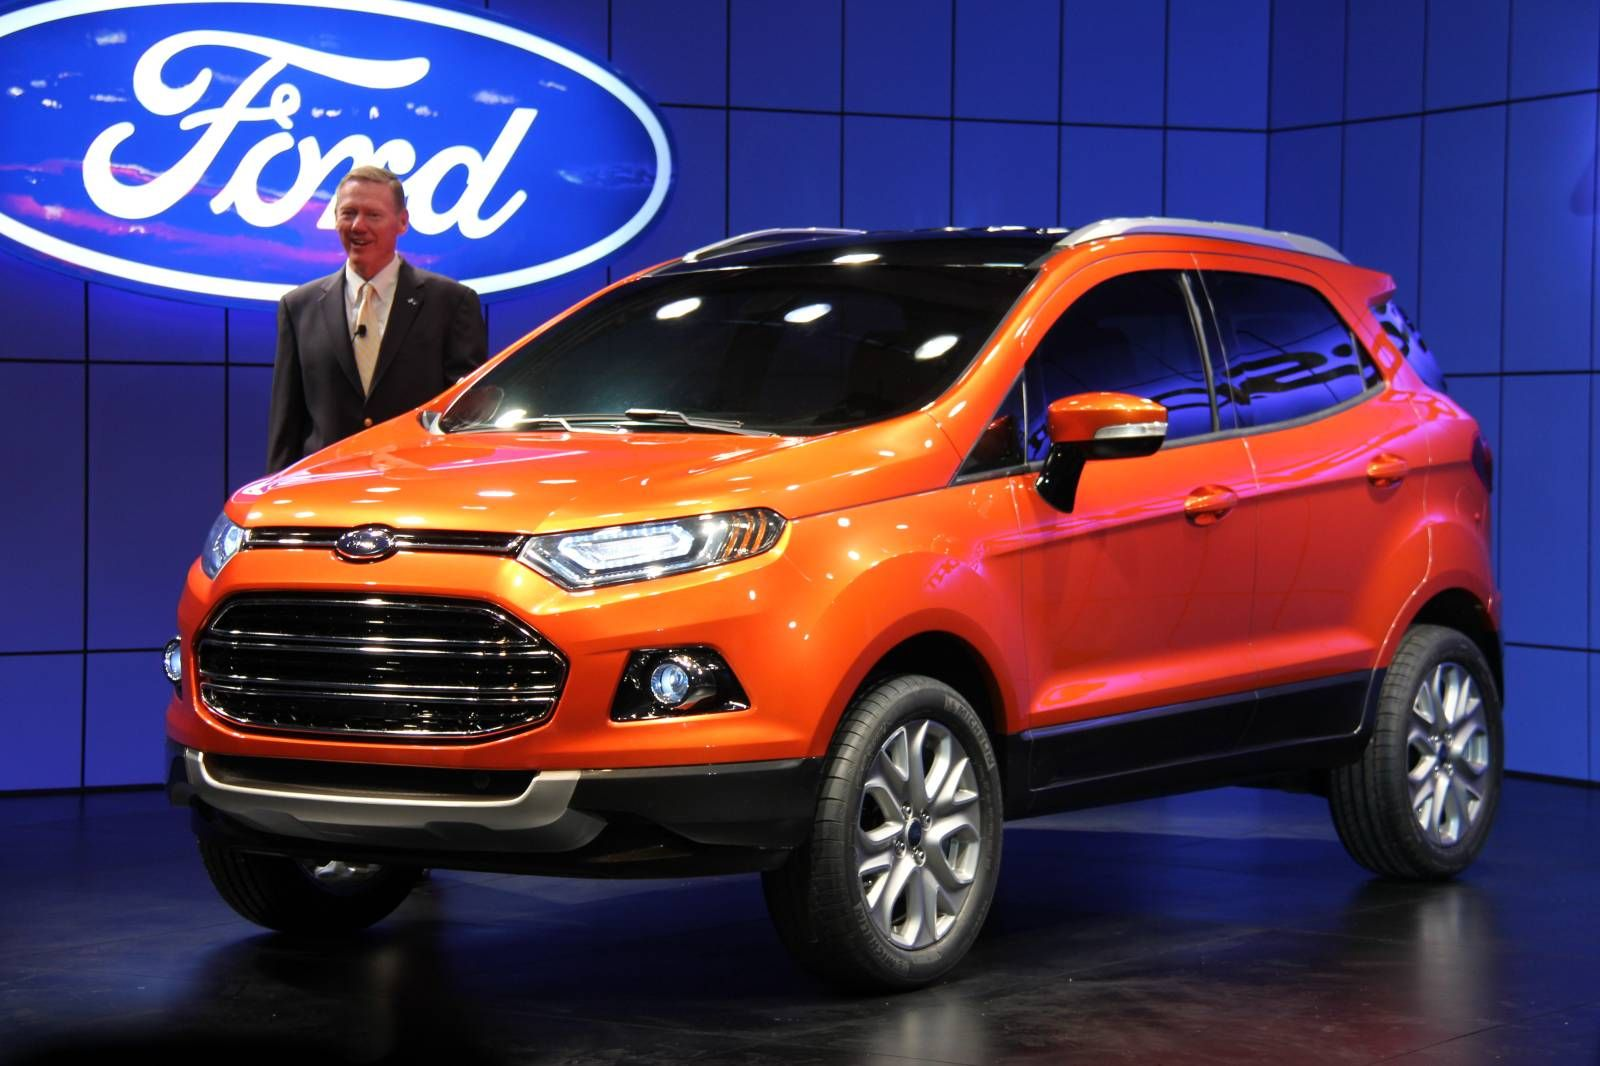 New Small Trucks For 2013 Ford Ecosport Picture Courtesy Motorbeam Com Small Trucks Ford Ecosport Ford